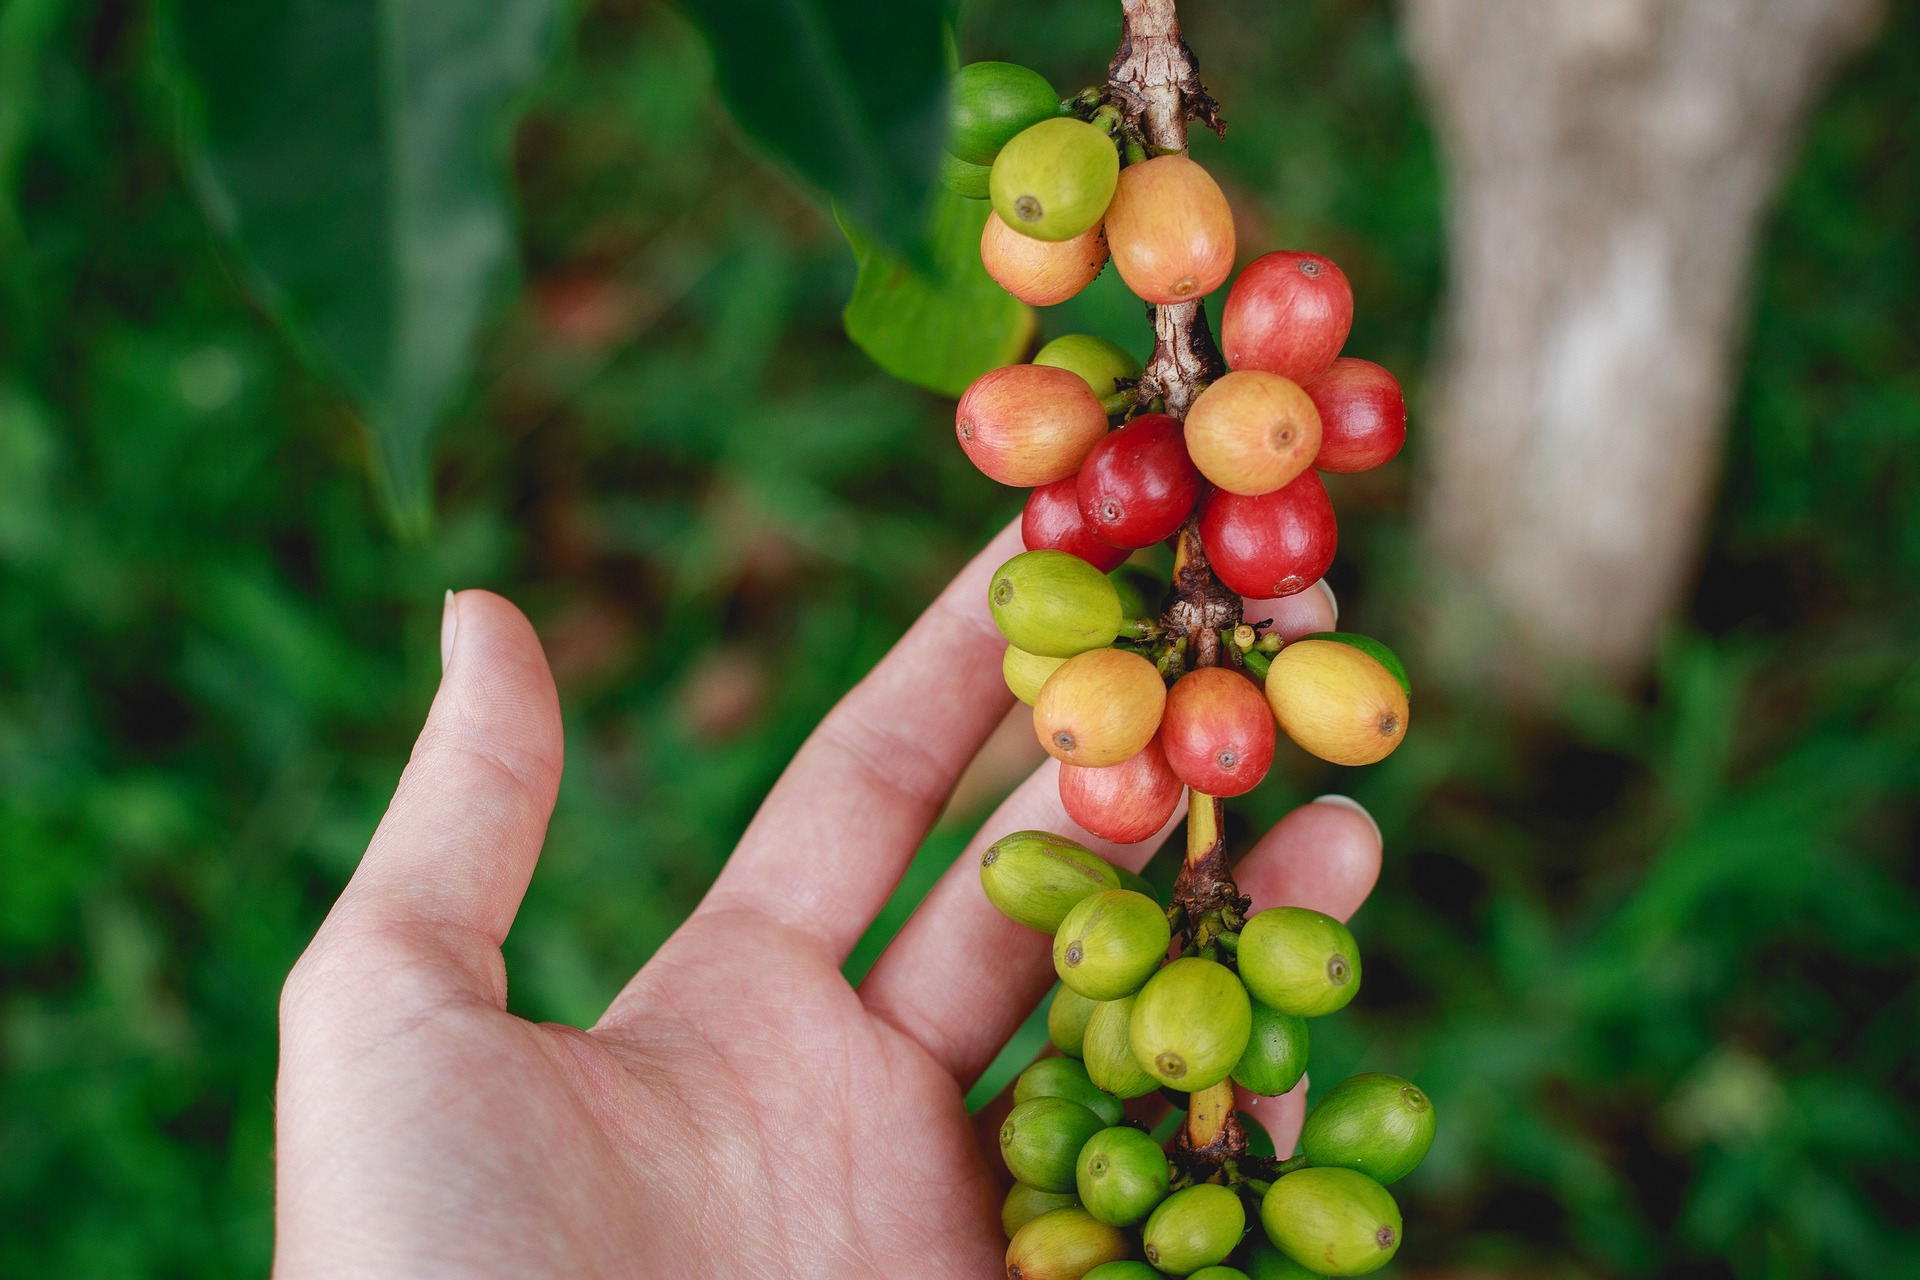 holding coffee beans in hand